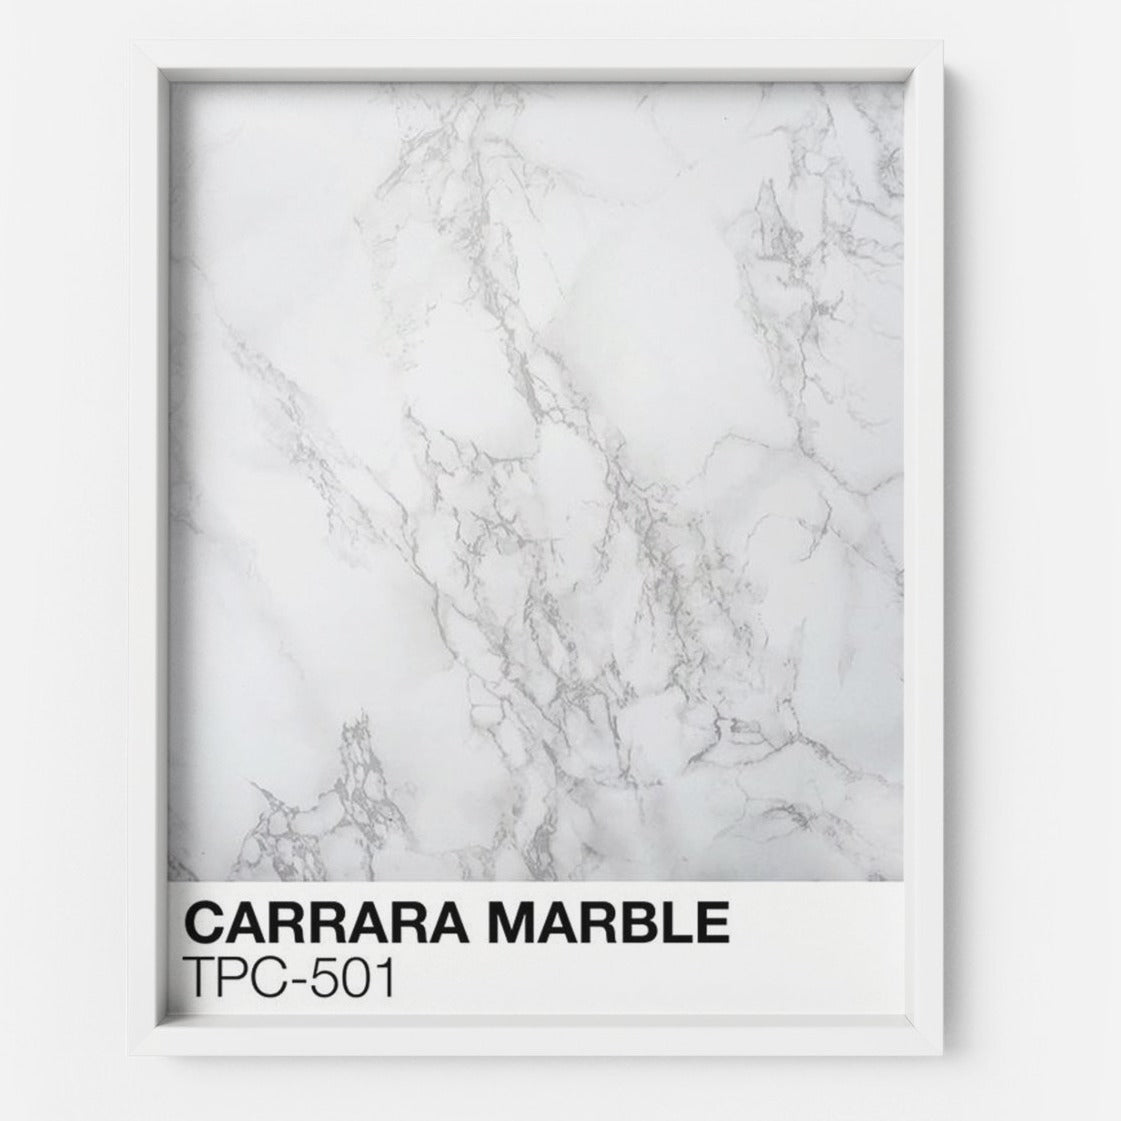 CARRARA MARBLE TPC-501 - THE PRINTABLE CONCEPT - Printable art posterDigital Download -